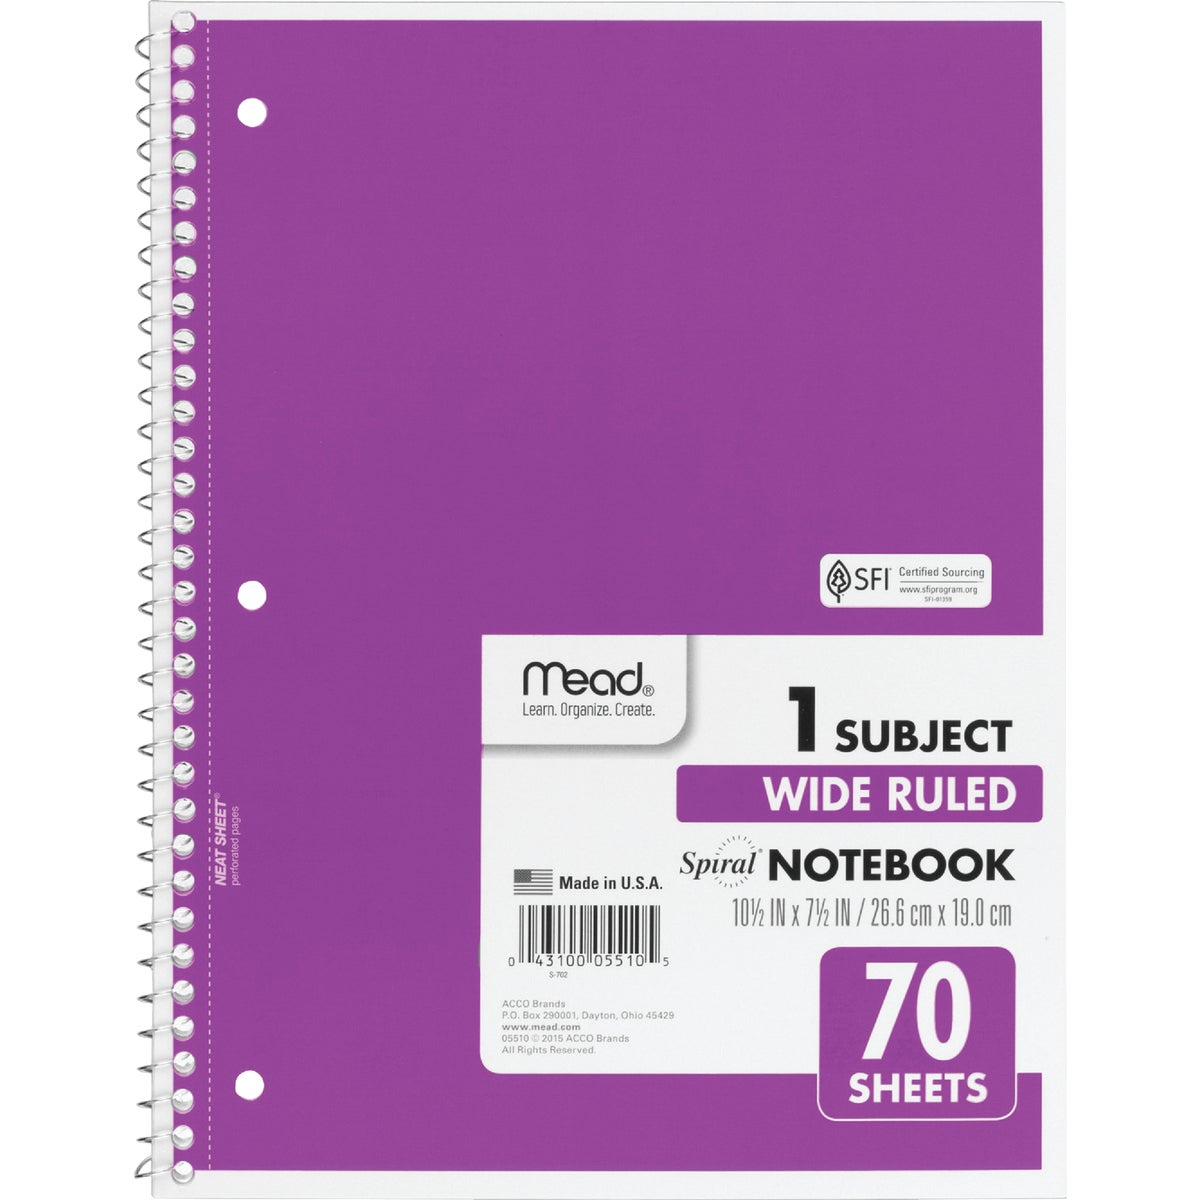 70 SHEET 8X10.5 NOTEBOOK